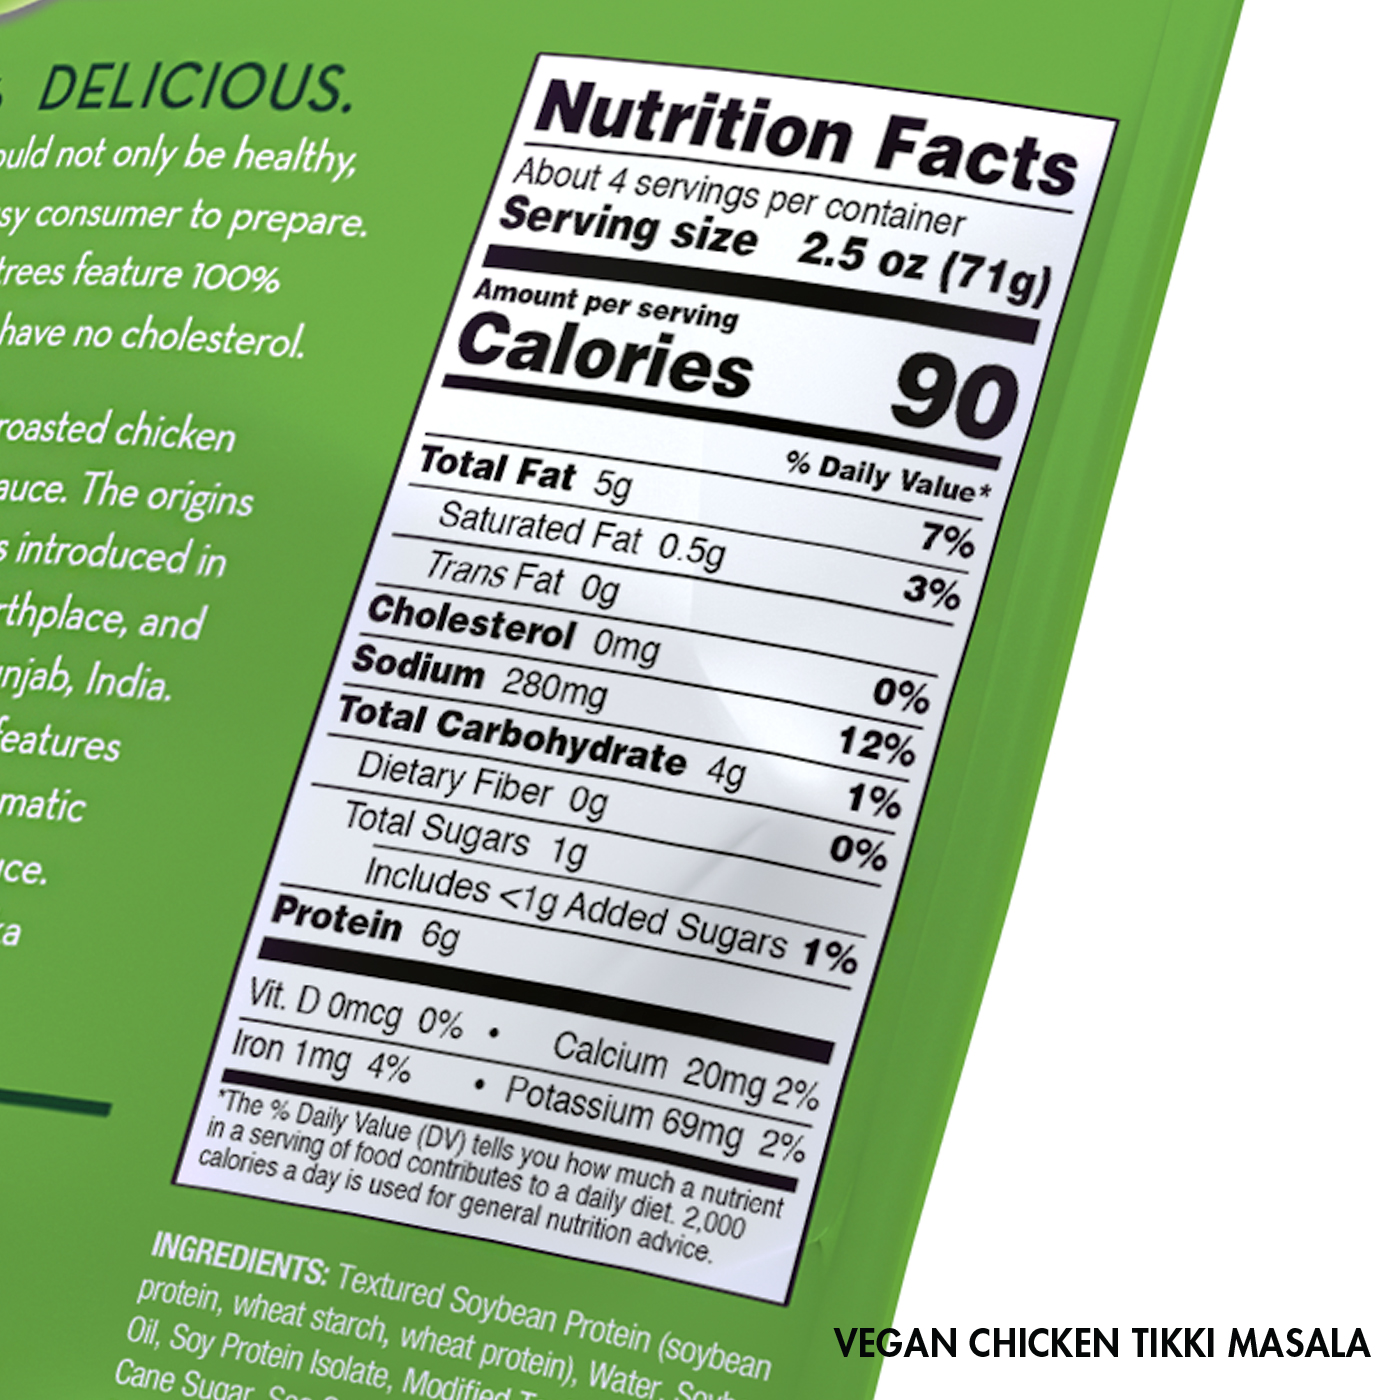 Vegan Chicken Tikka Masala Nutrition Facts